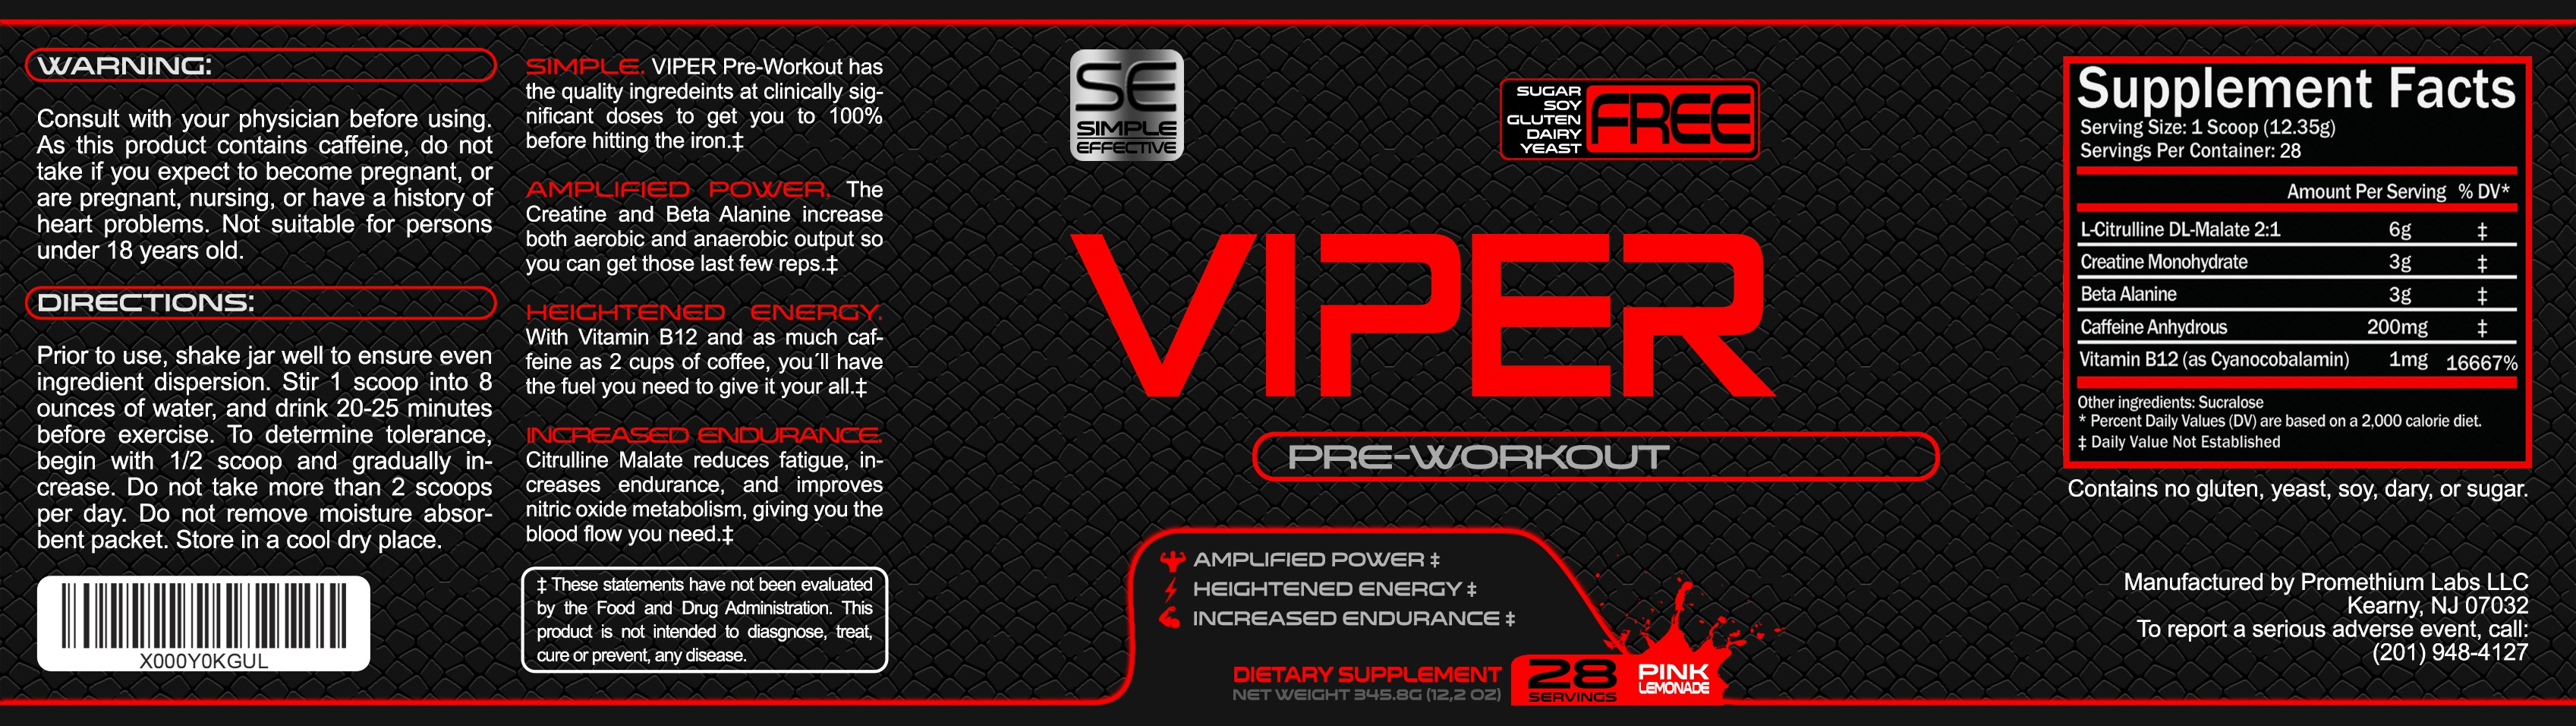 Create a simple and captivating label for Viper Pre-Workout